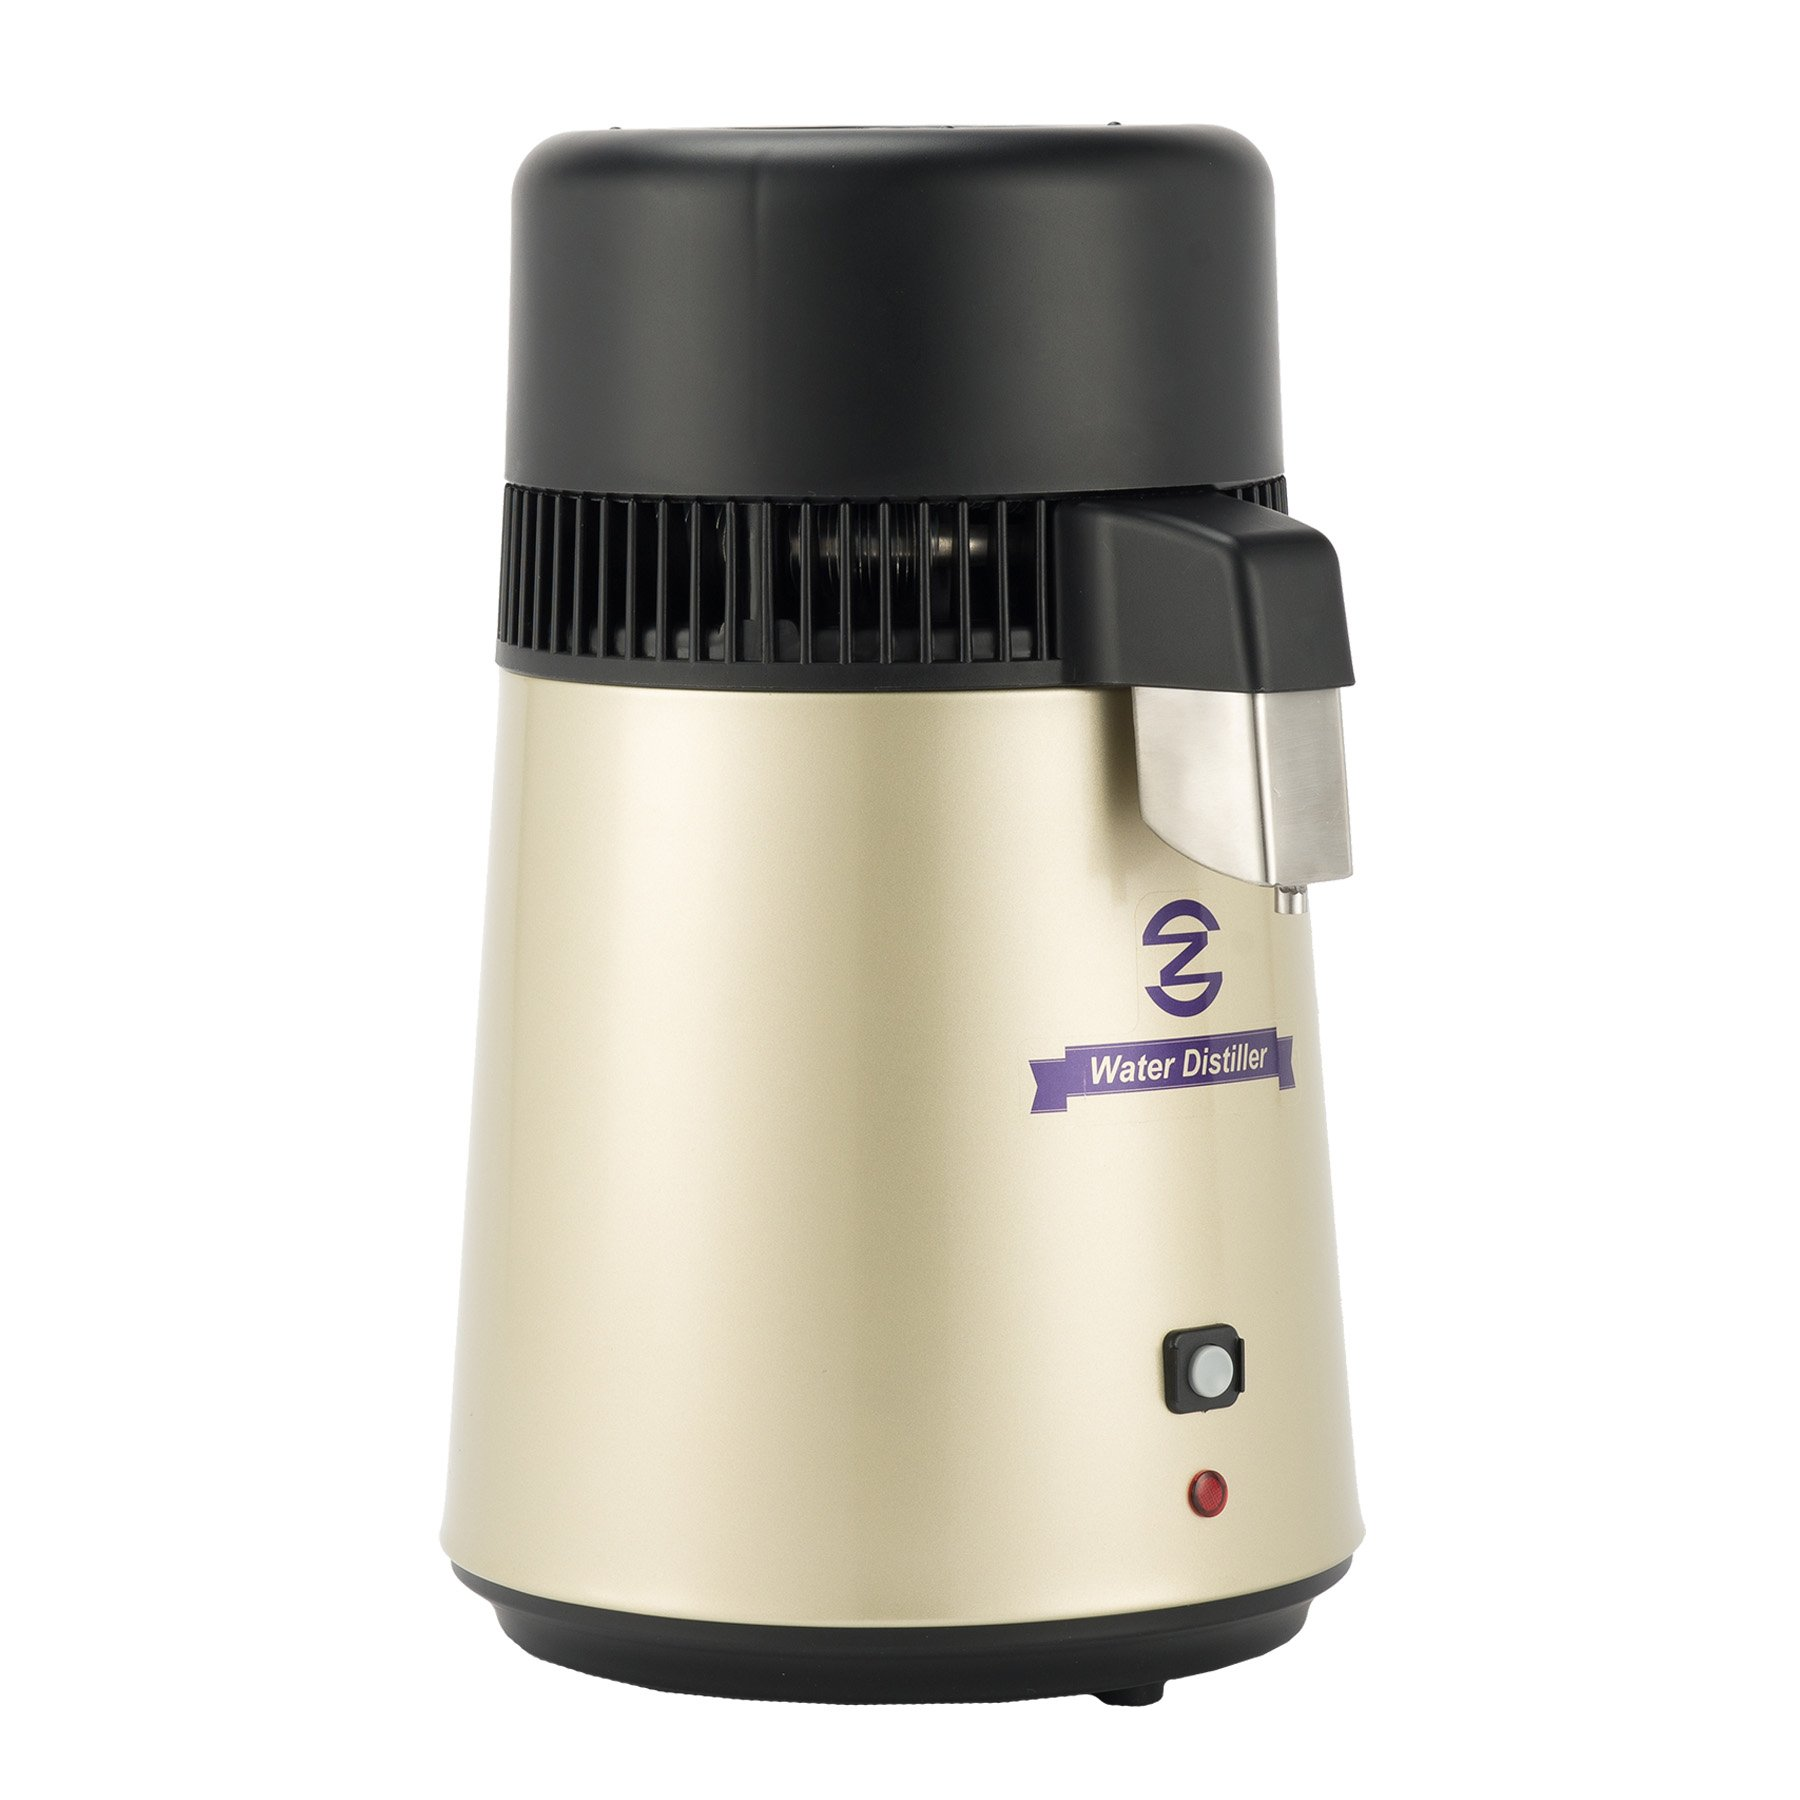 CO-Z Stainless Steel Countertop Home Water Distiller Machine with 4 Liter Connection Bottle by CO-Z (Image #2)